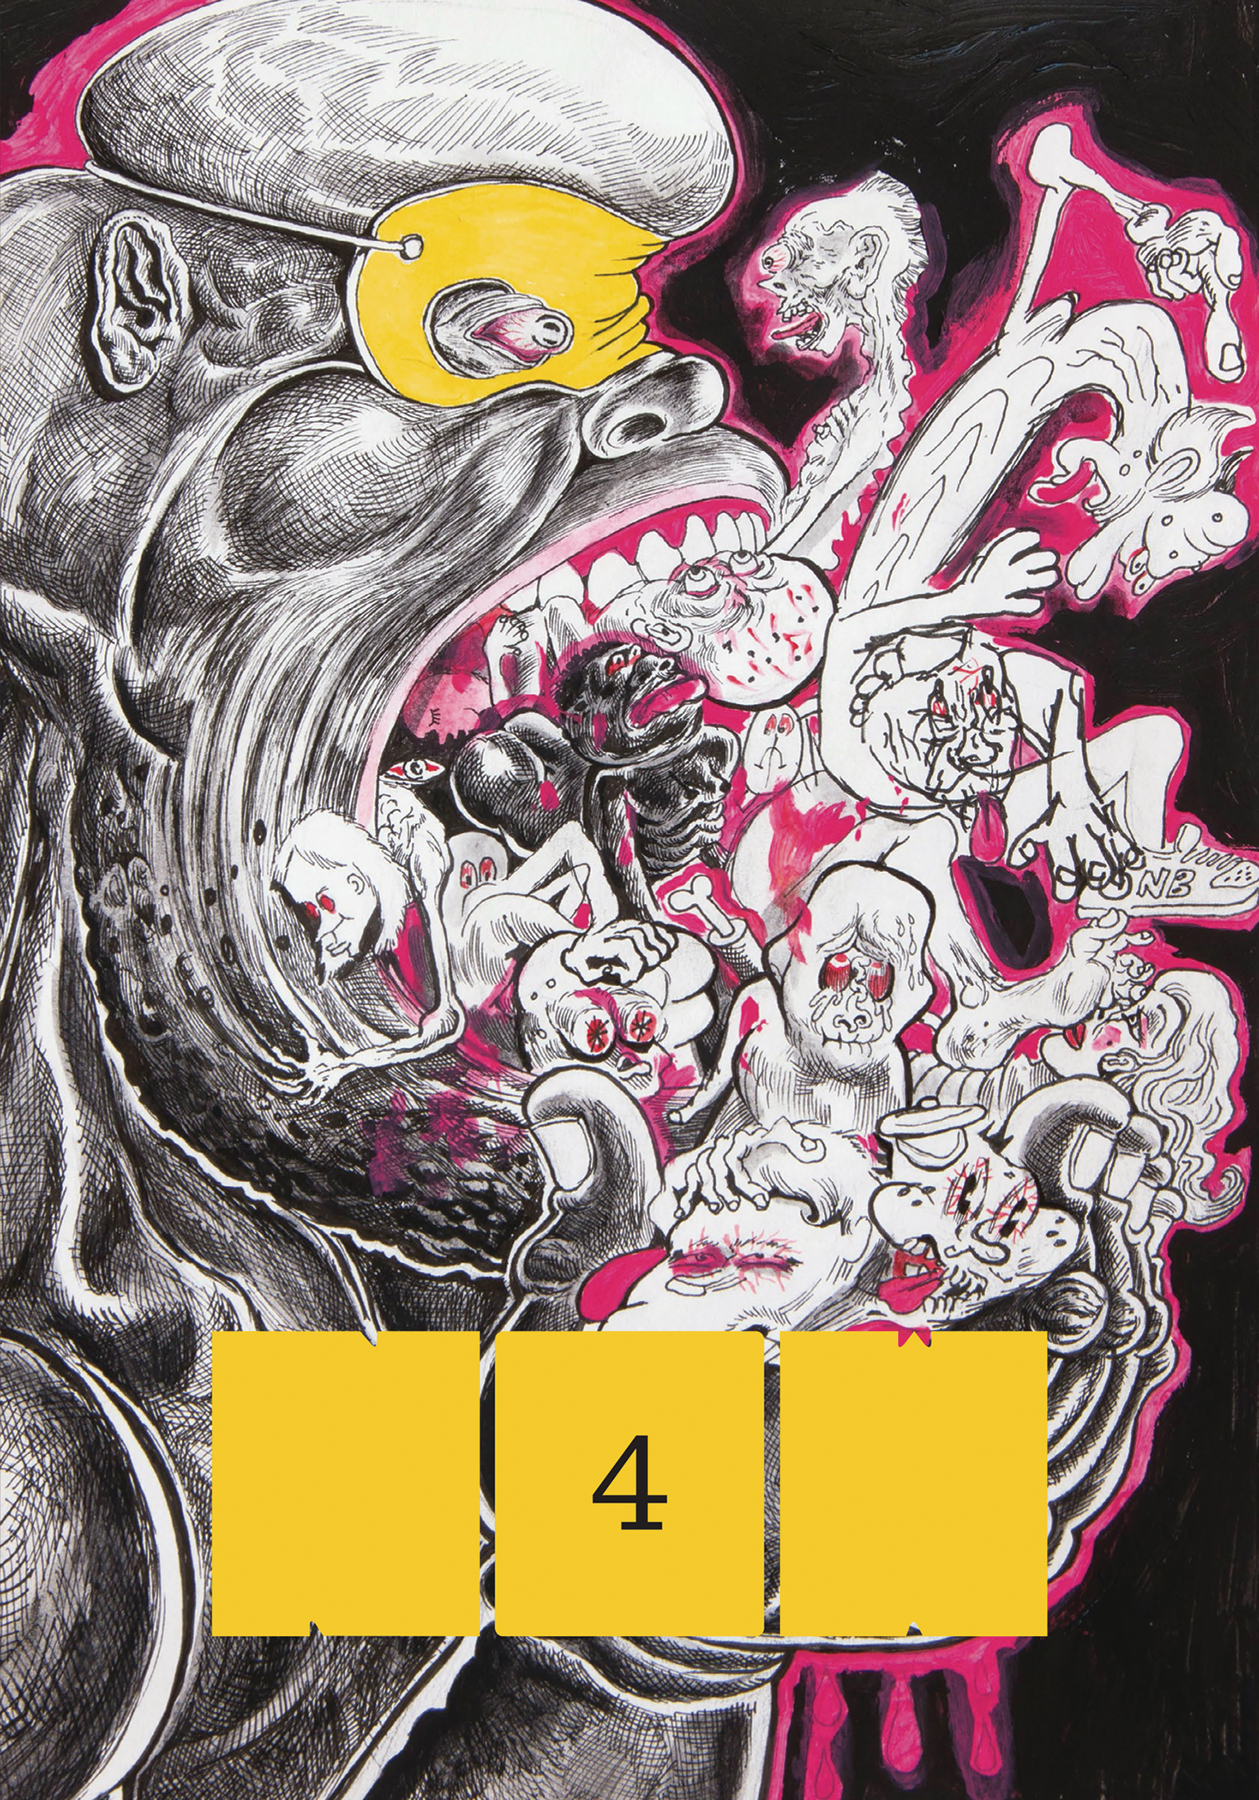 NOW #4 NEW COMICS ANTHOLOGY